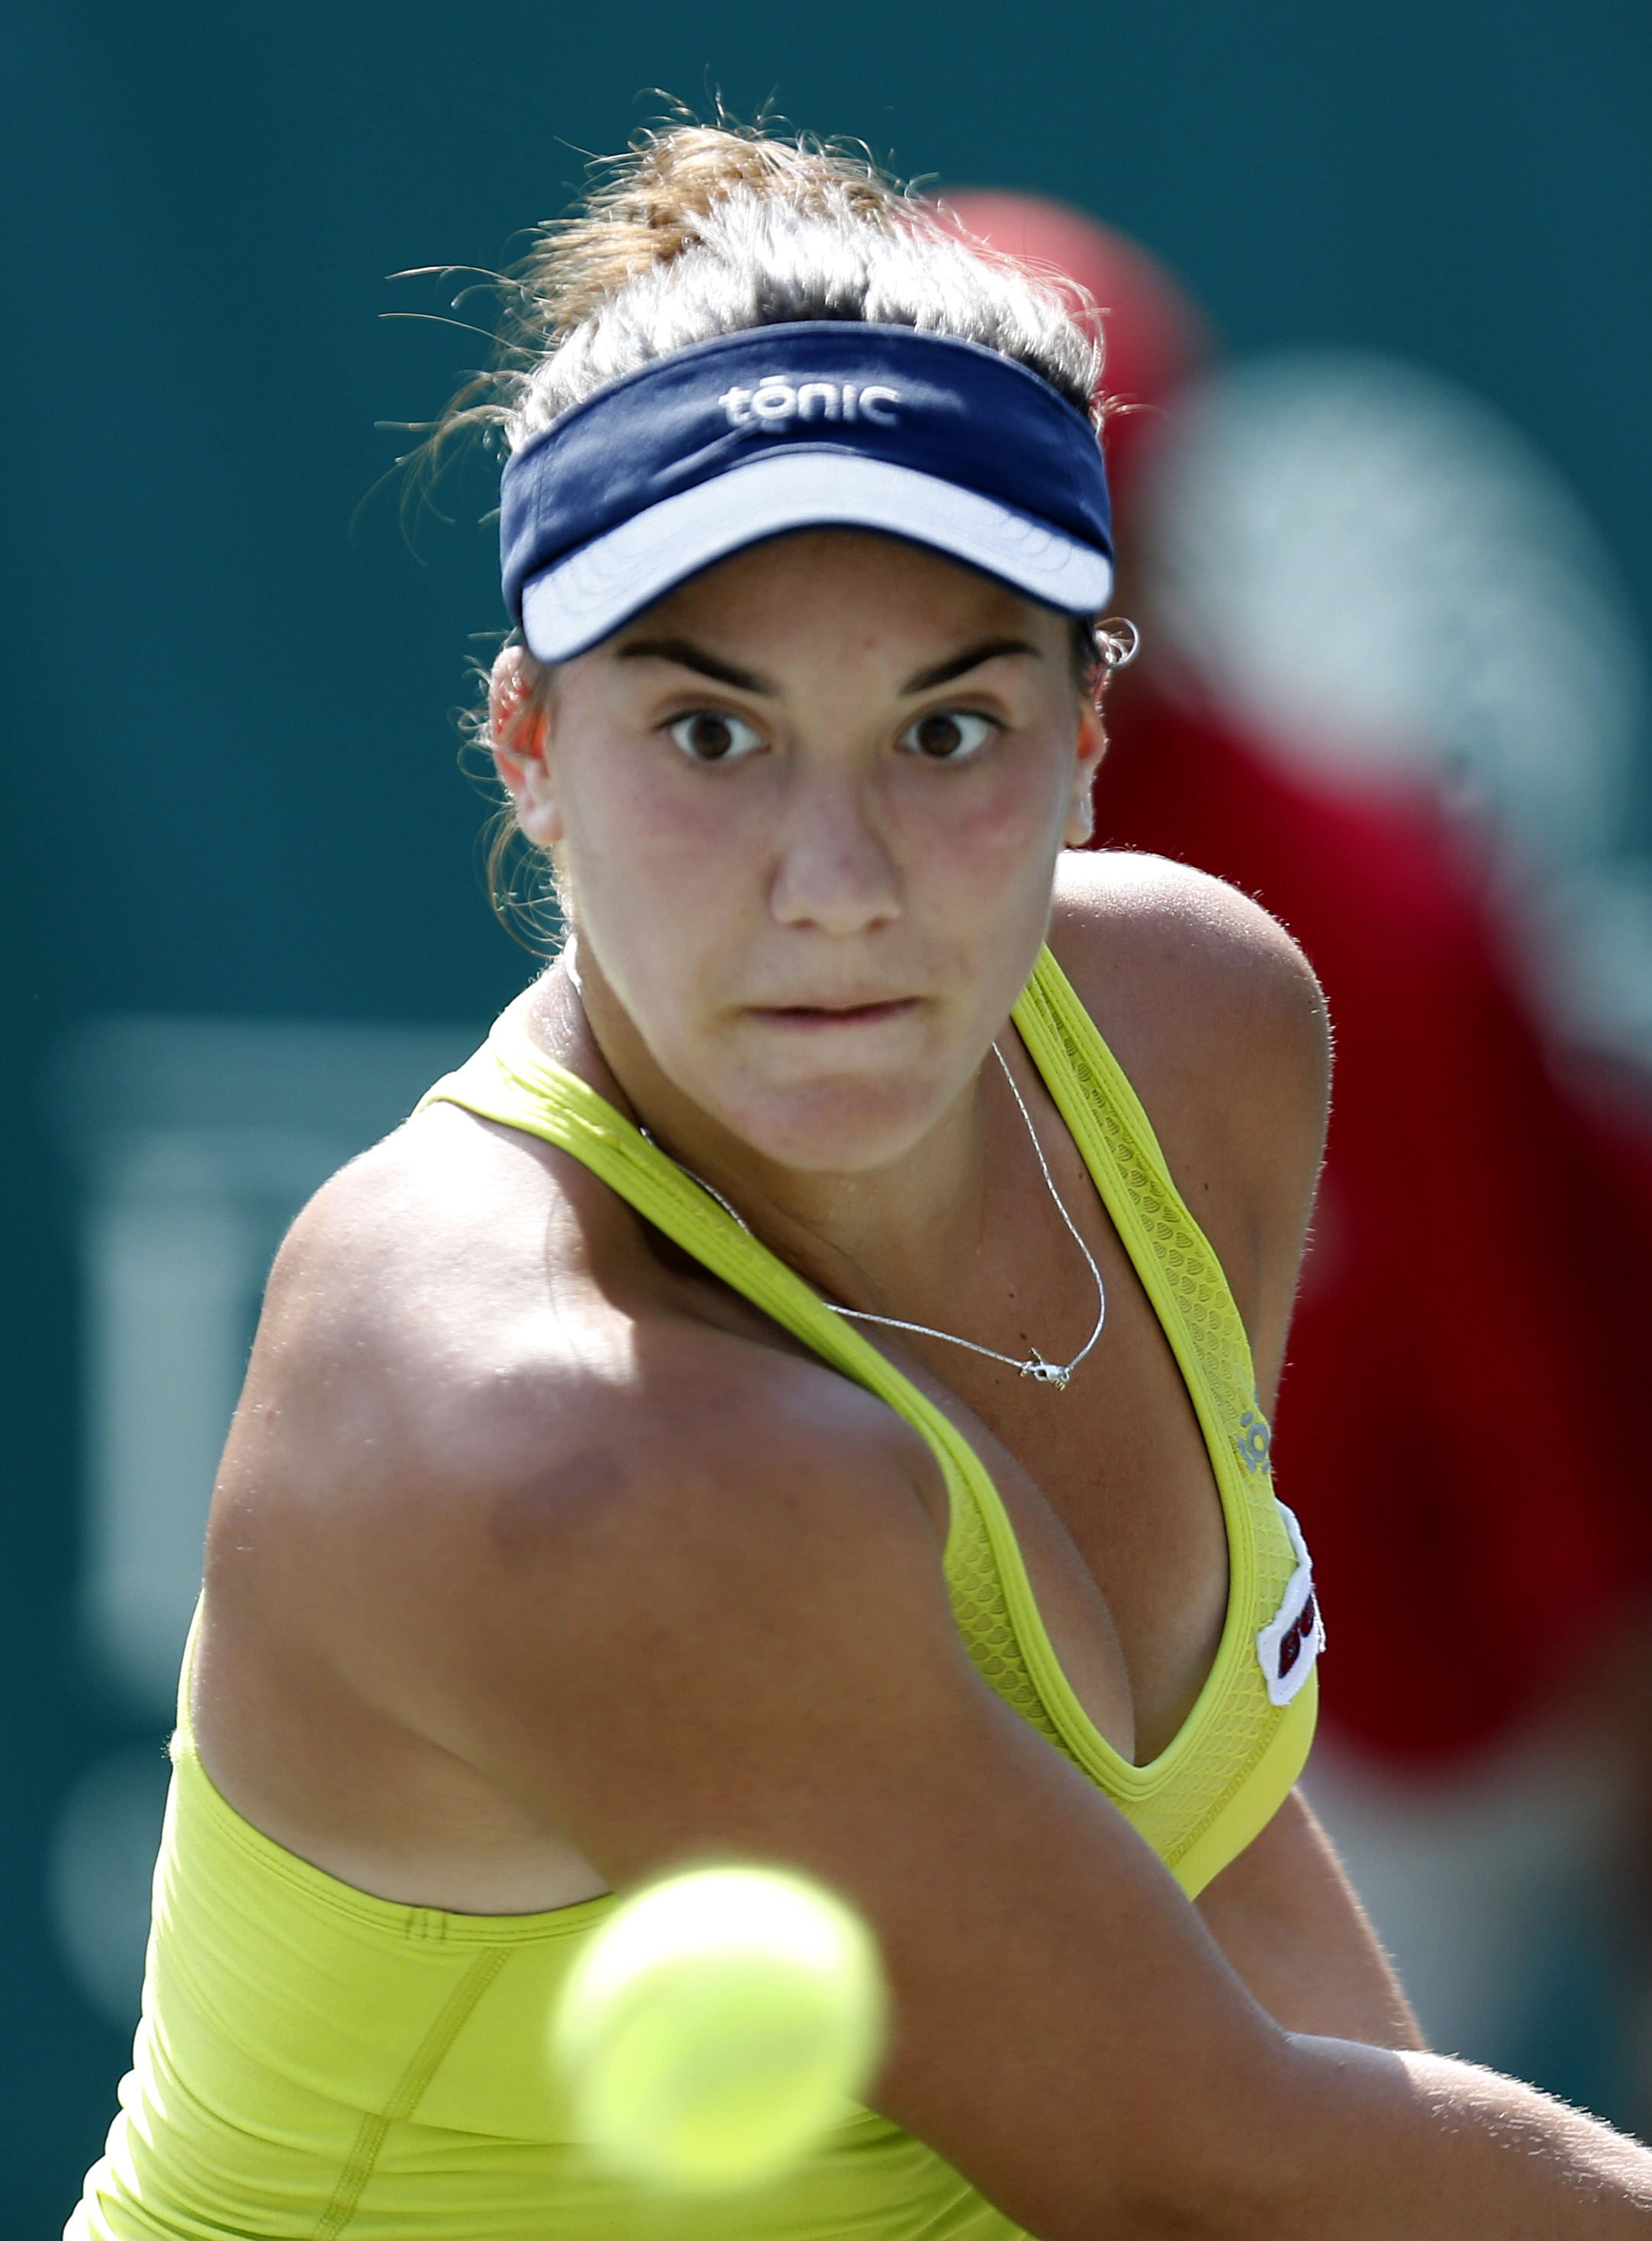 Davis beats top-seeded Bouchard in Family Circle Cup